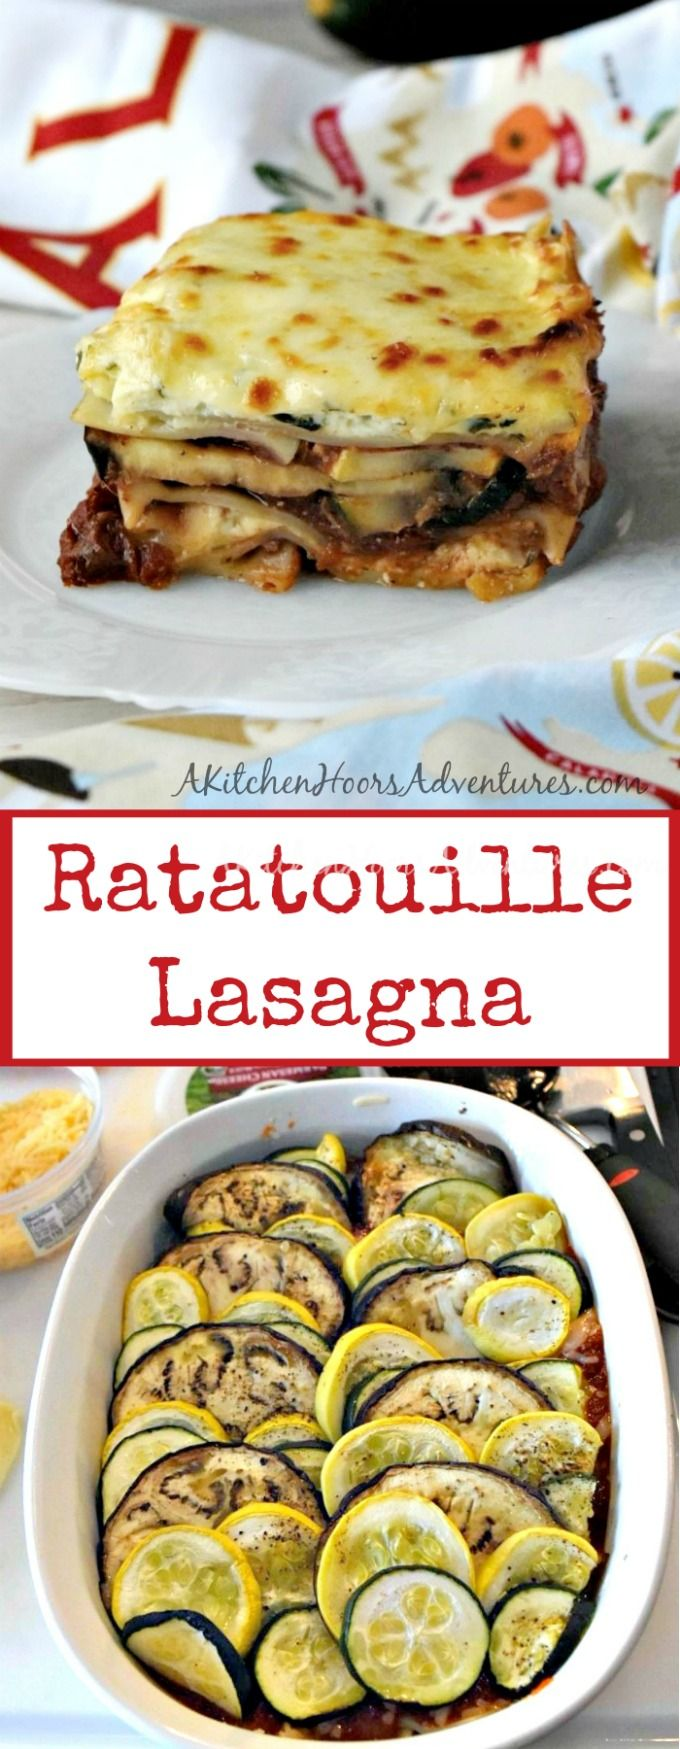 If you prefer organic fruits and vegetables for your family, then have no fear! My Organic Ratatouille Lasagna is 100% organic from the olive oil to the pasta. And the Veggie Wash is organic, too!